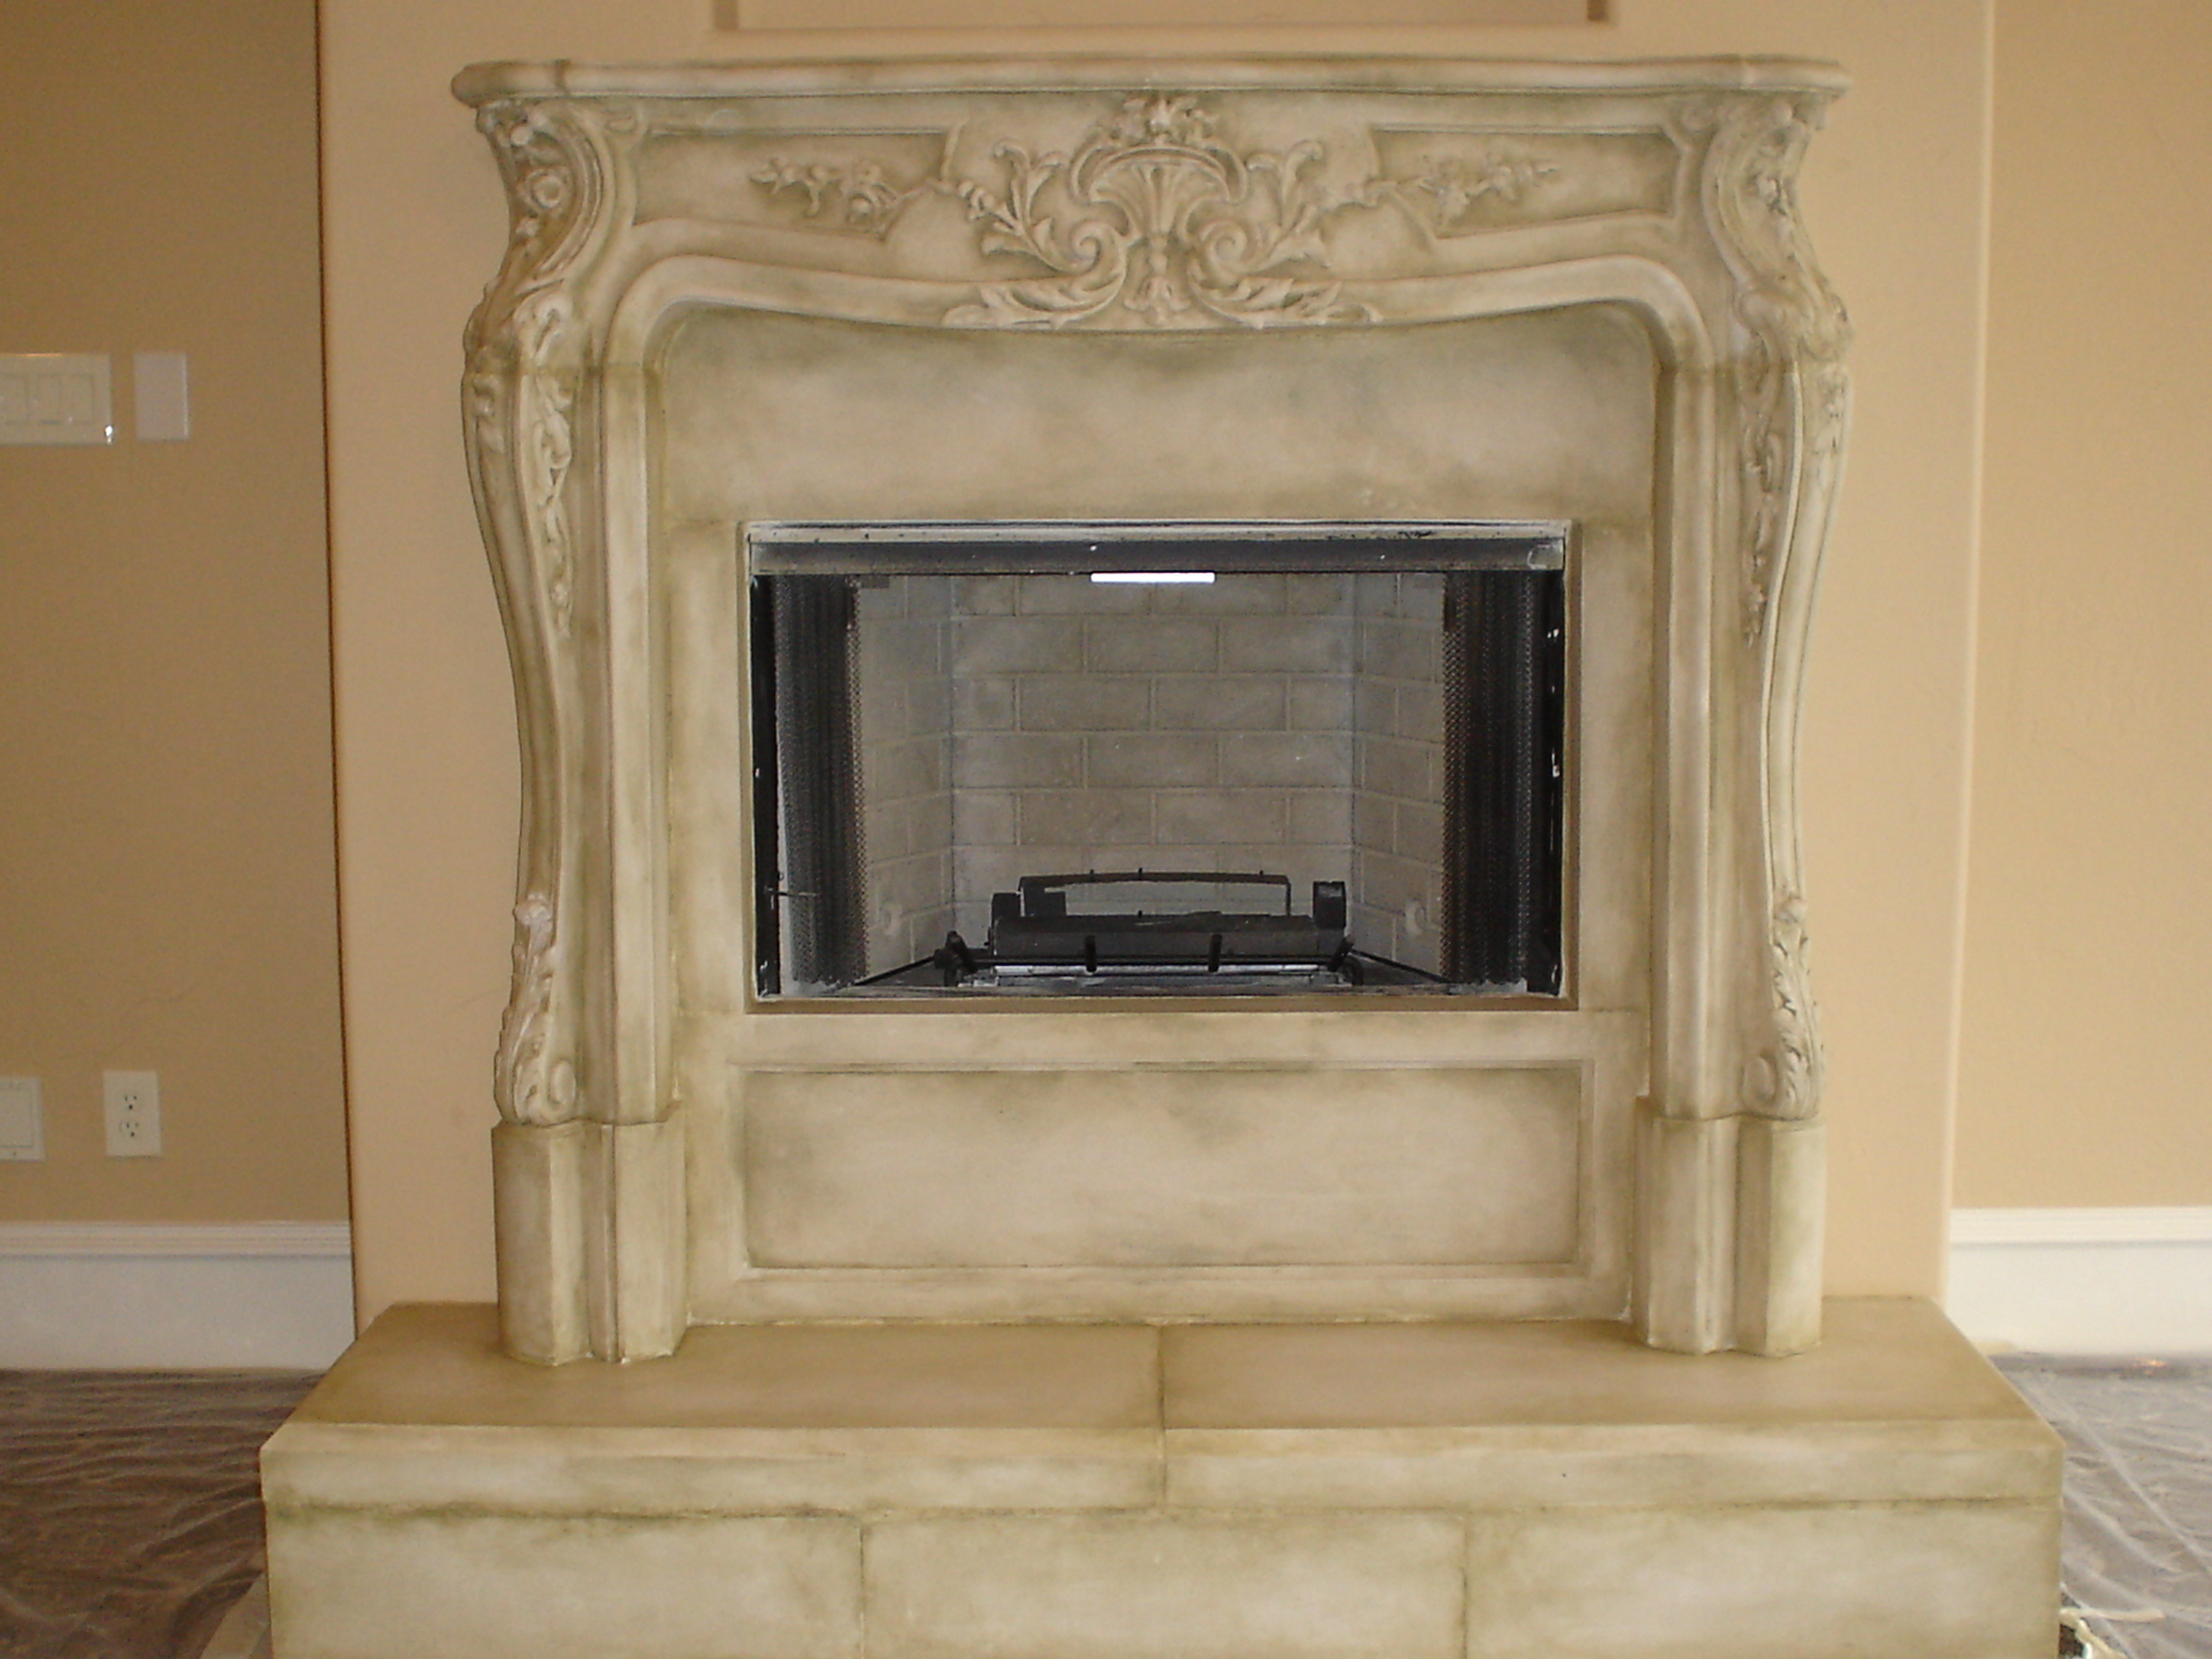 Arteffectsinc Cast Stoneapplying An Application To Your Cast Stone Fireplace Or Vent Hood Is Decorative And Also Adds A Protective Layer To This Very Absorbent Material Any Color Can Be Applied